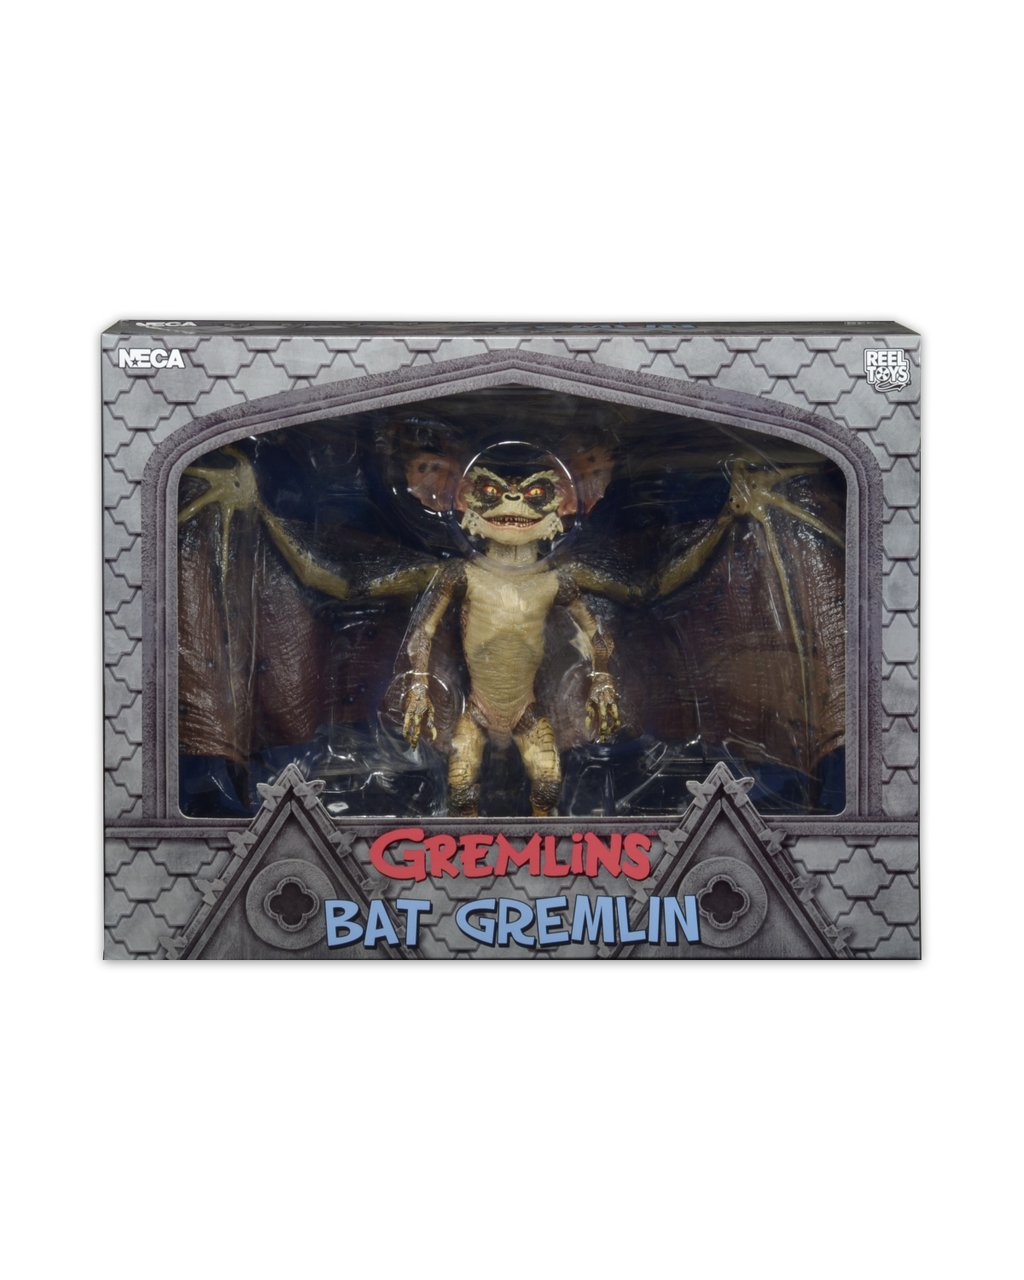 NECA Toys Provides In Package Images Of Gremlins 2 – Deluxe Boxed Action Figure – Bat Gremlin